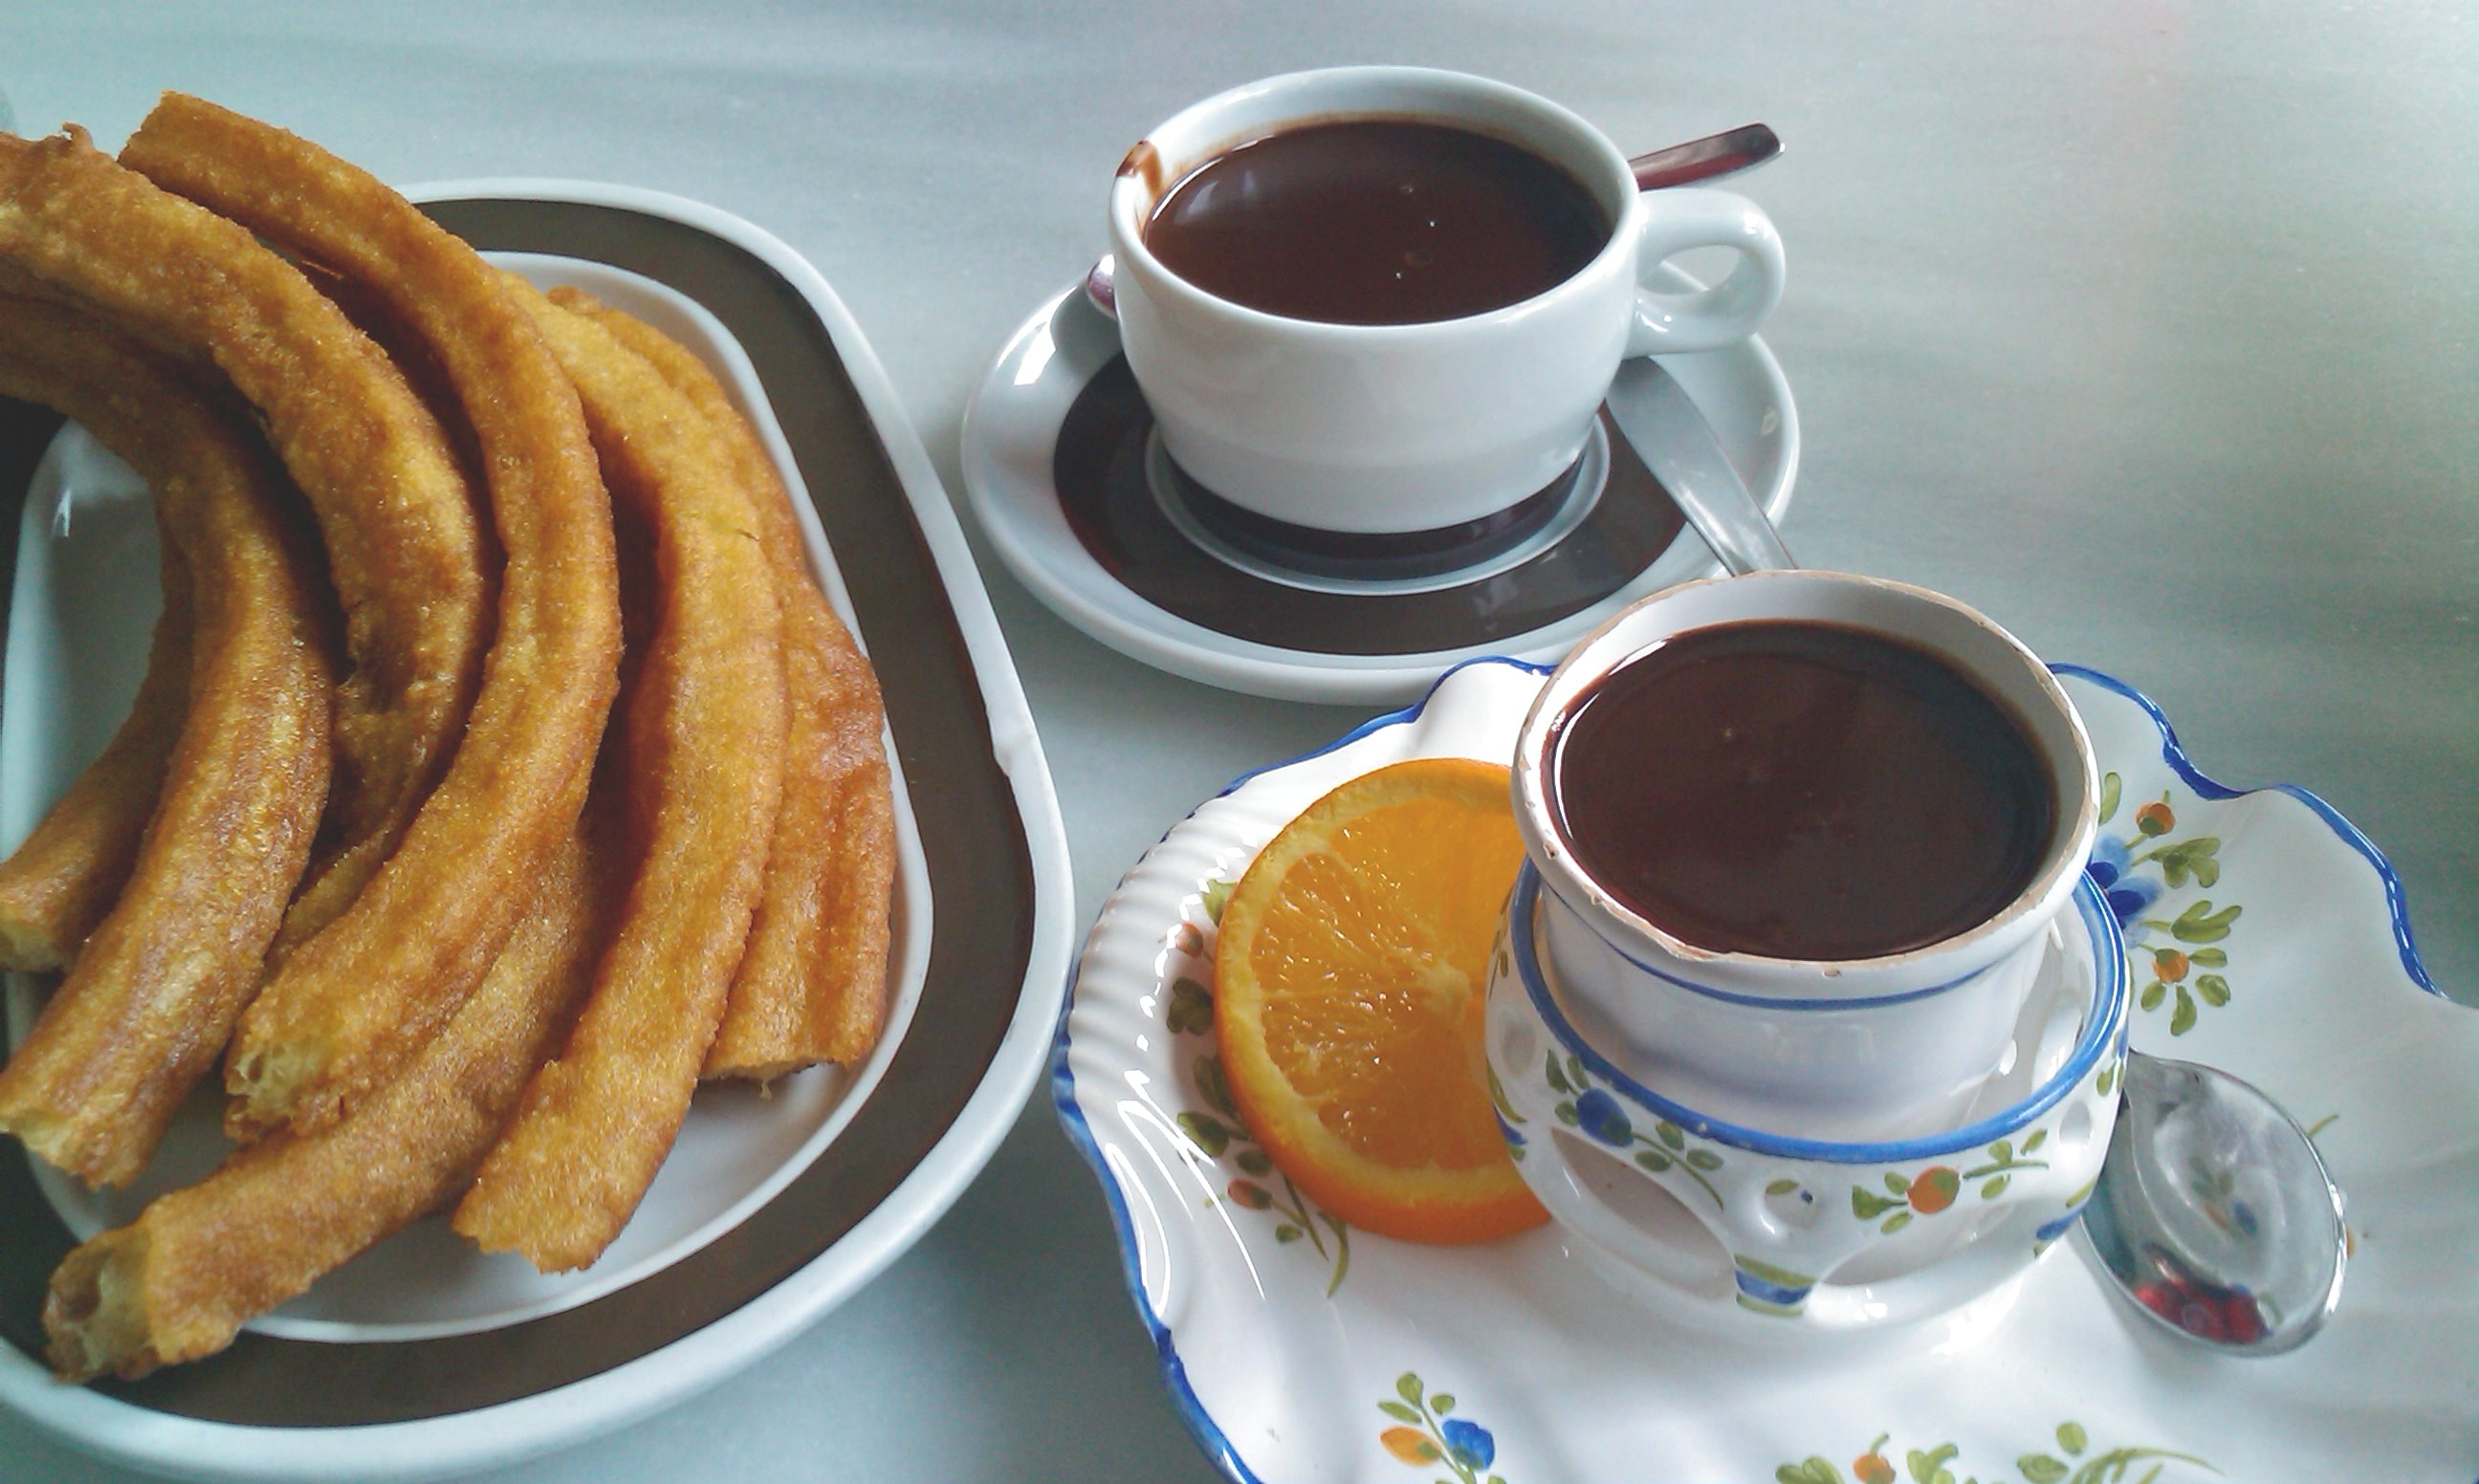 File:Chocolates y churros valor plaza de la reina.jpg - Wikimedia ...